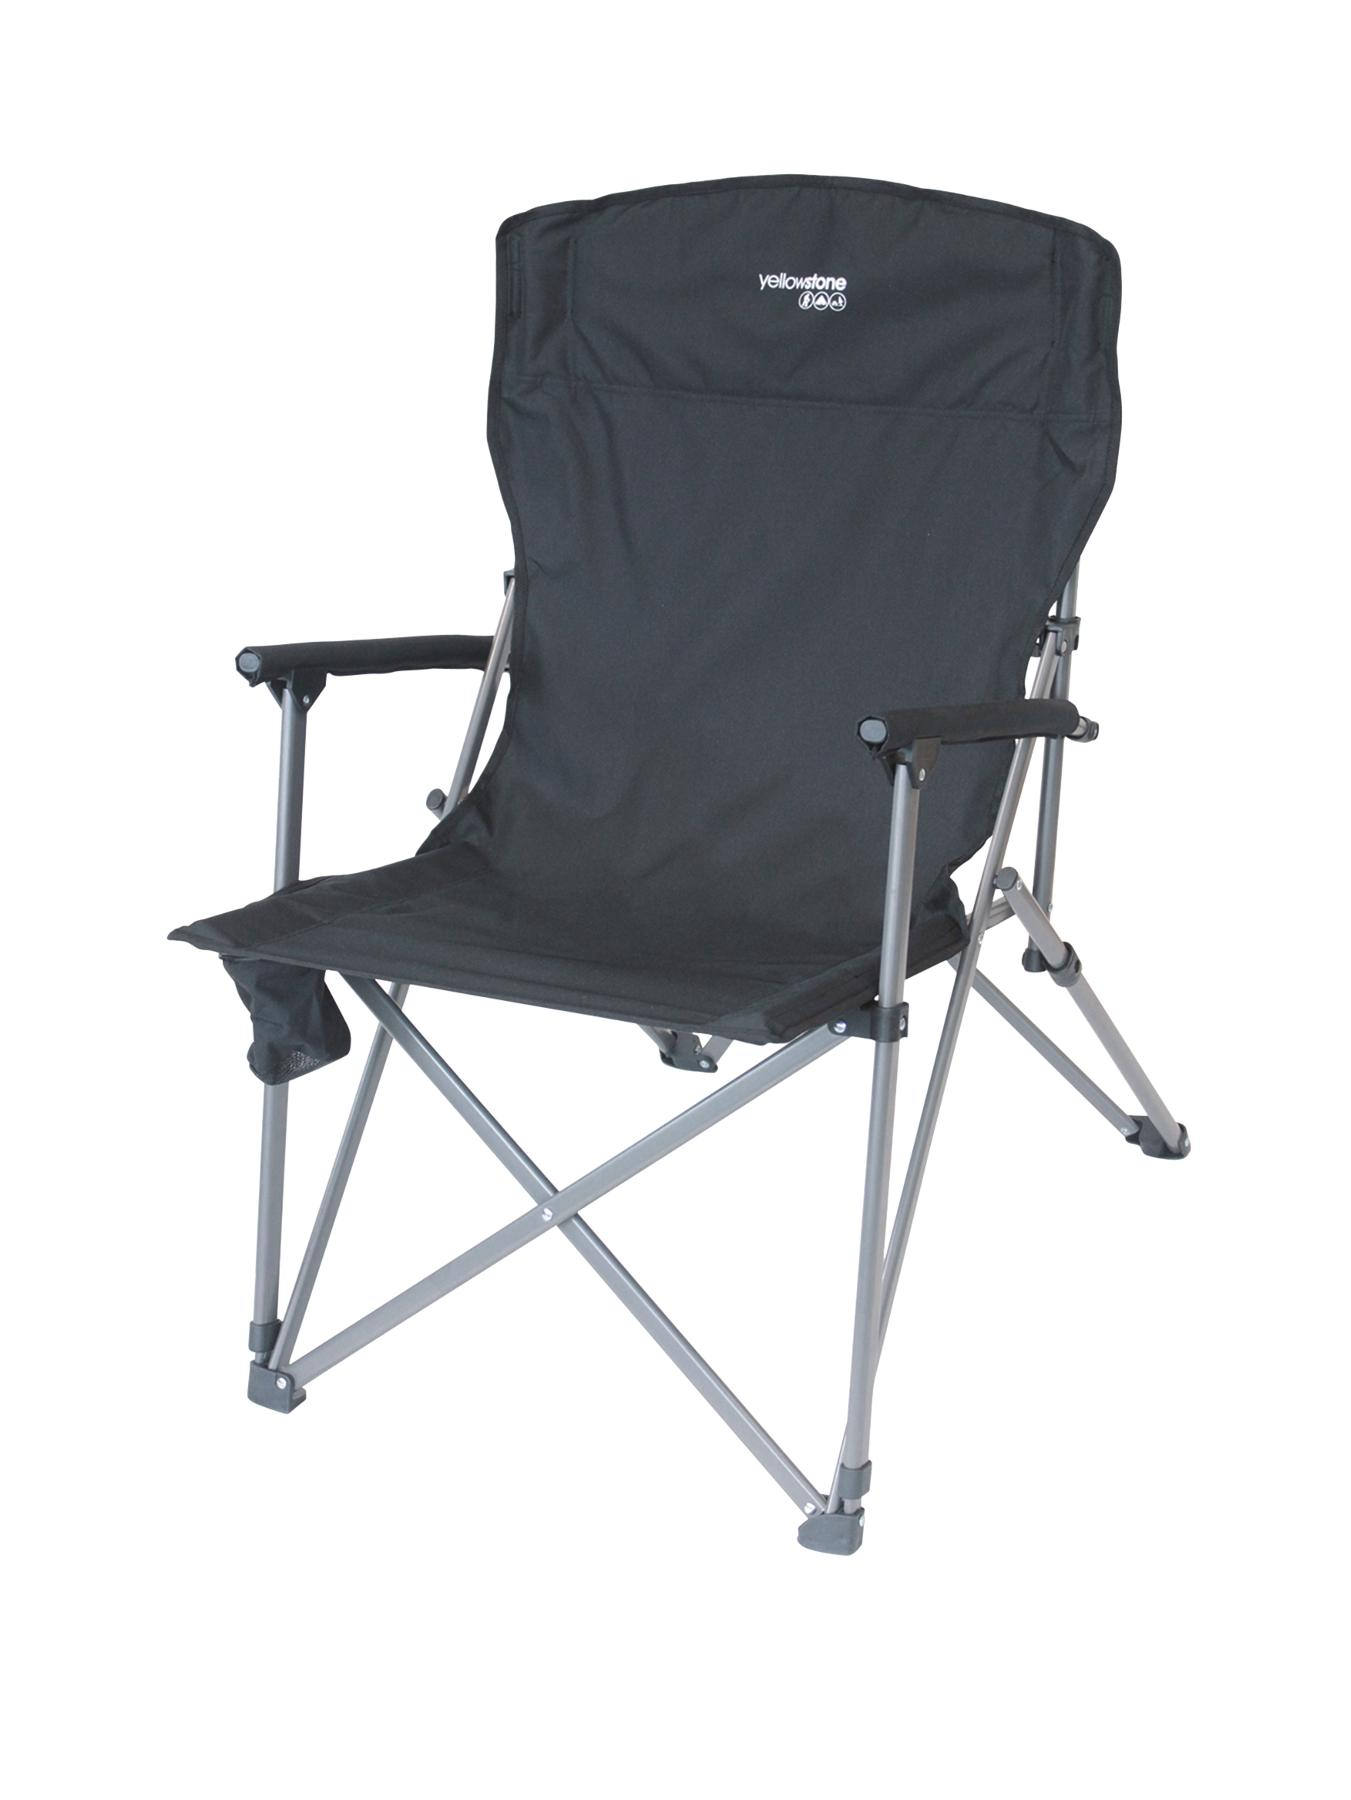 Castleton Camping Chair